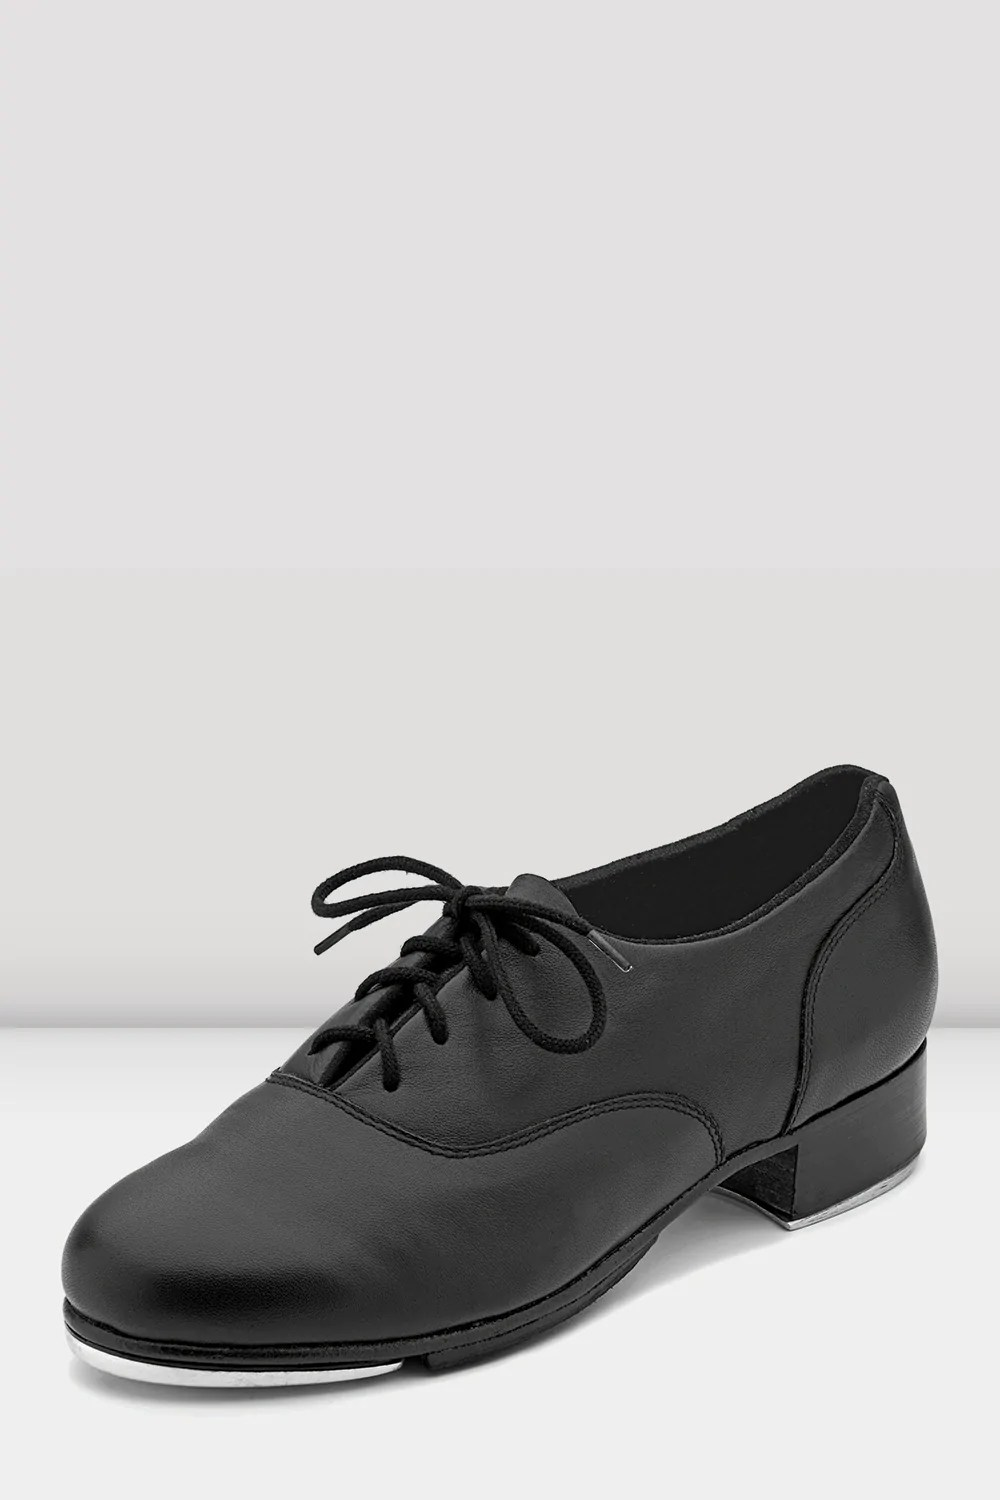 Tap shoes Images and Stock Photos. 619 Tap shoes photography...